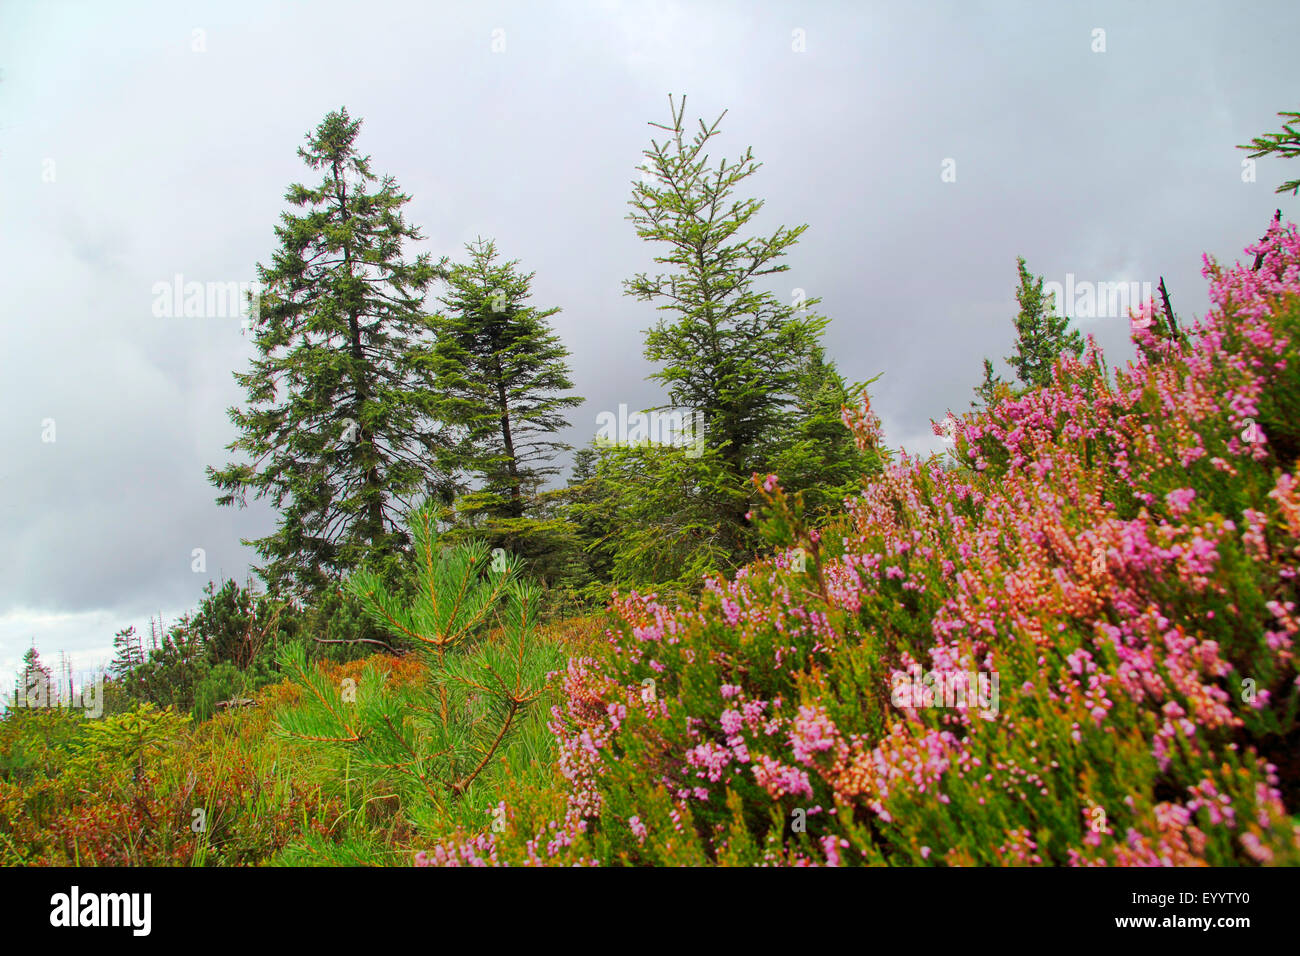 Foresta di conifere e heather in 1000 m di altezza, GERMANIA Baden-Wuerttemberg, Black Forest National Park Immagini Stock